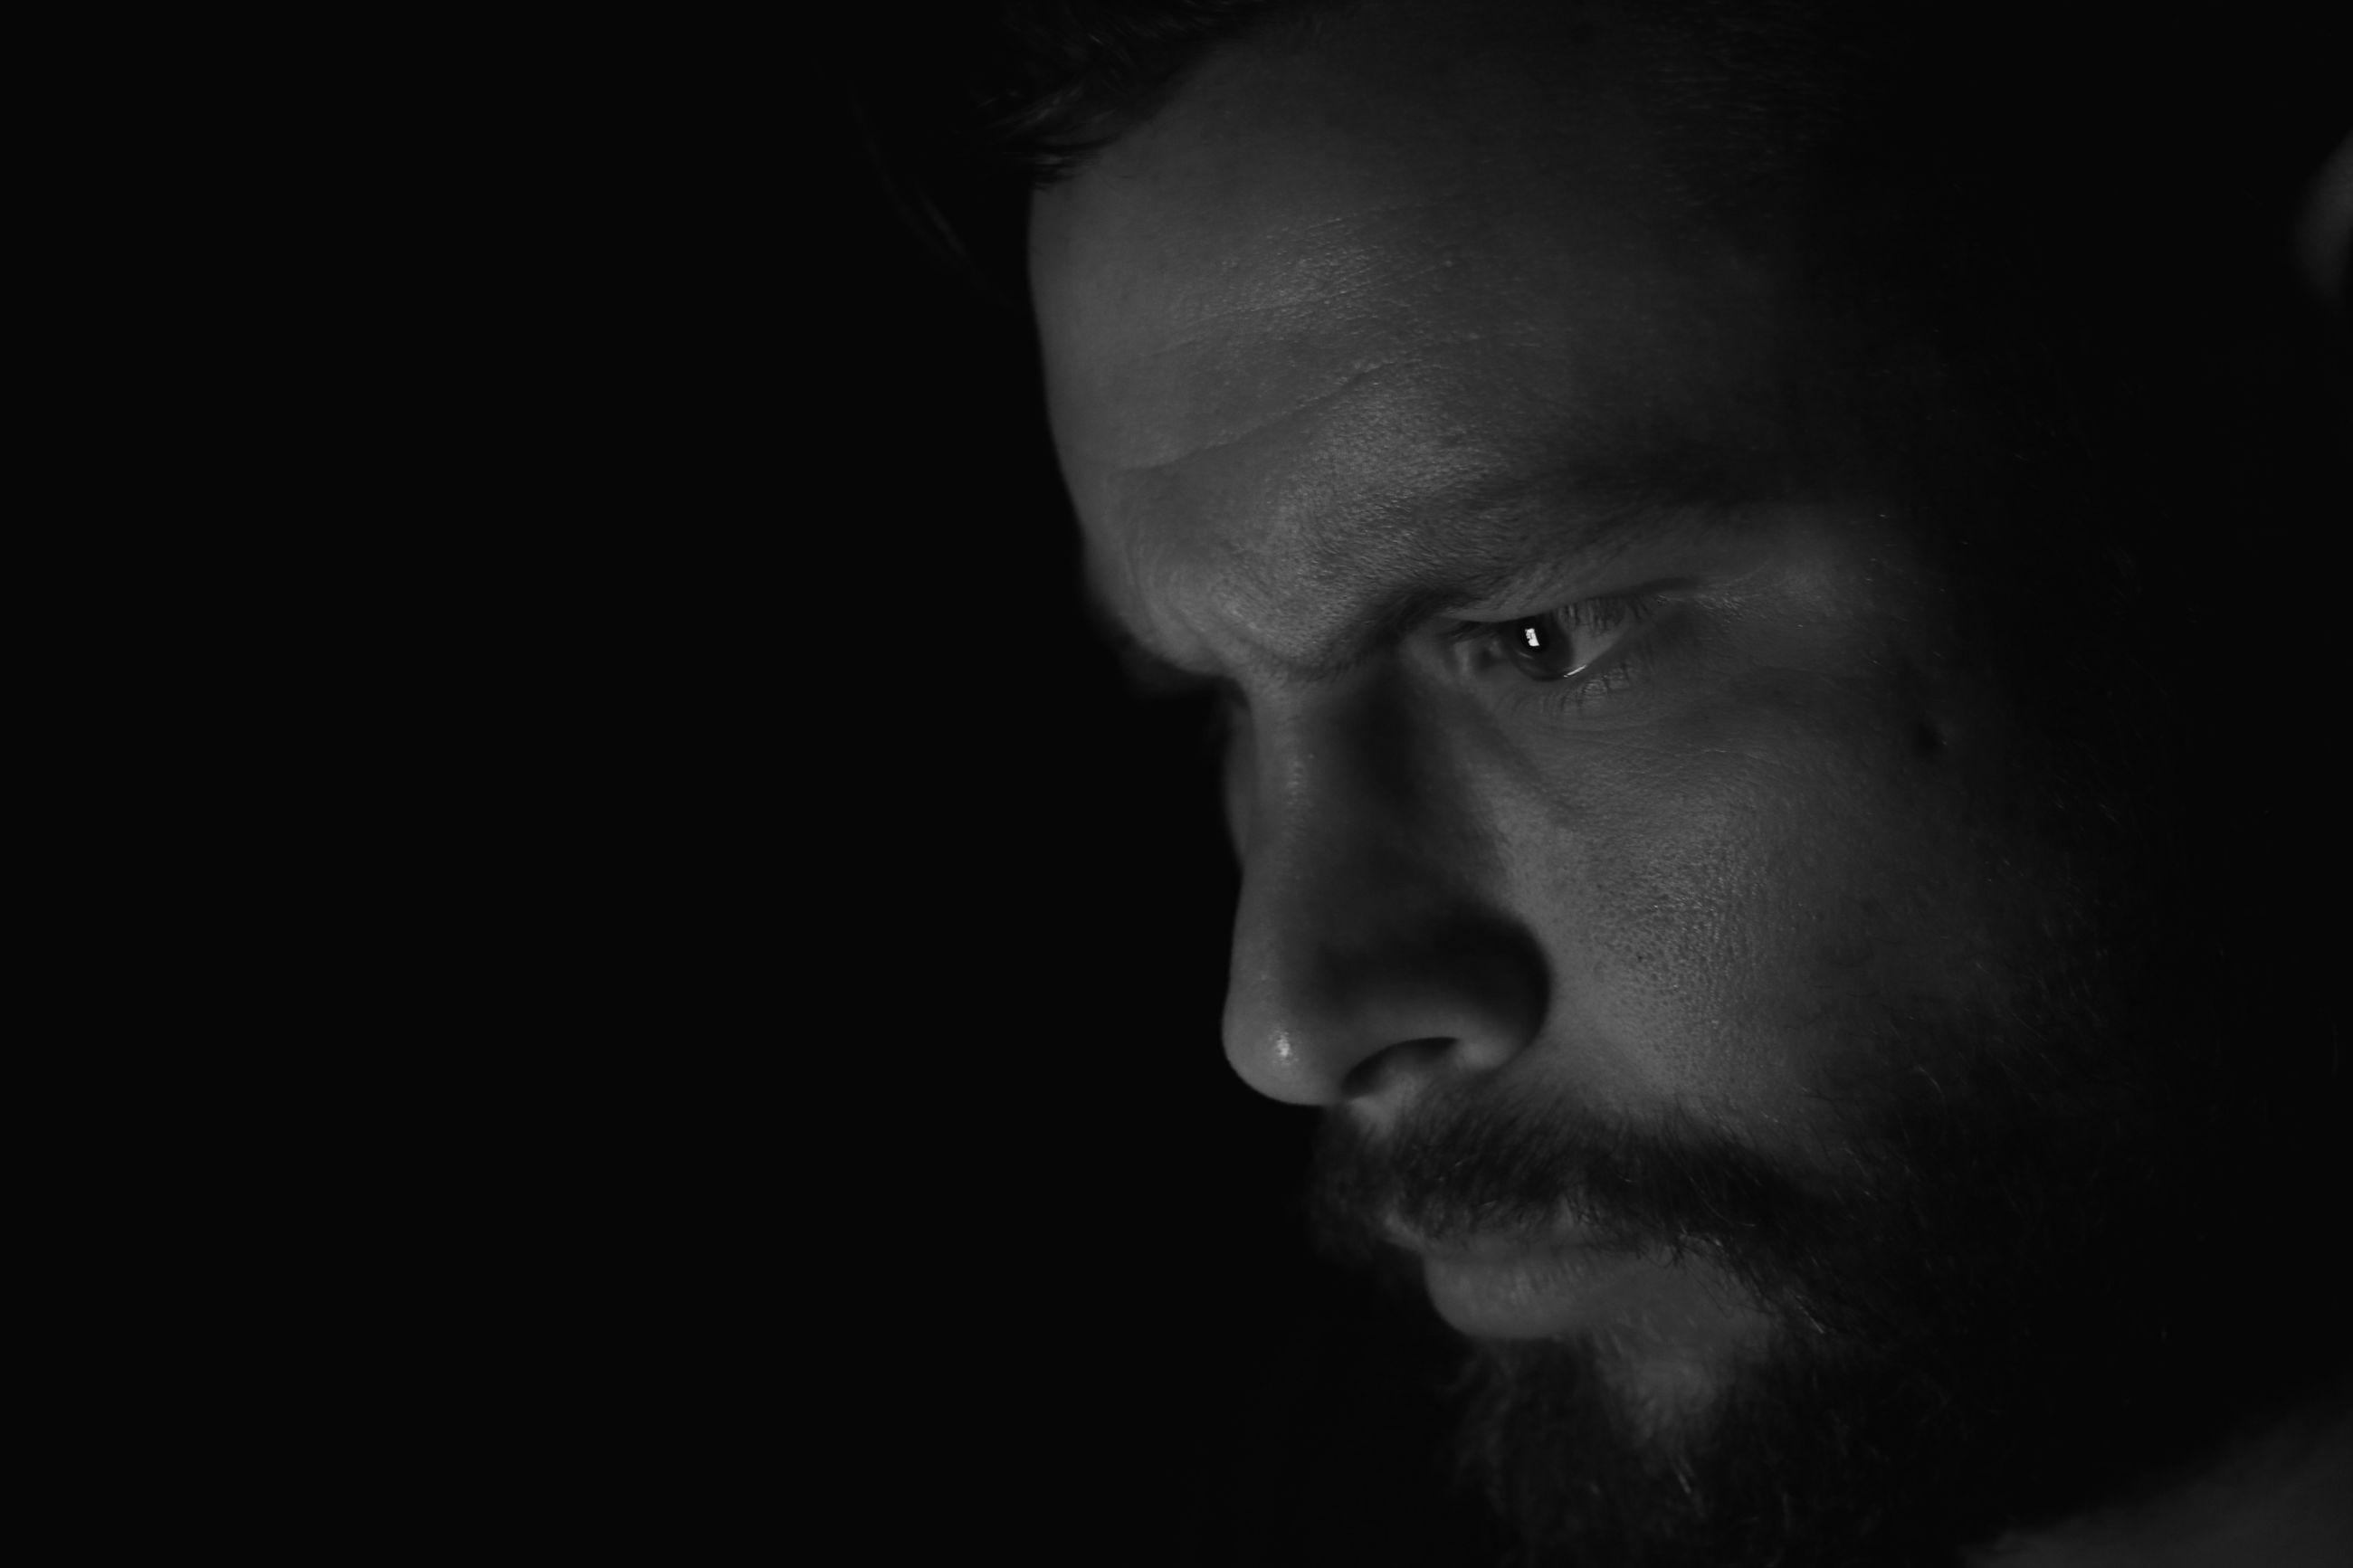 one person, headshot, indoors, black background, portrait, close-up, looking away, studio shot, men, young men, looking, human face, serious, human body part, body part, males, facial hair, lifestyles, mid adult men, contemplation